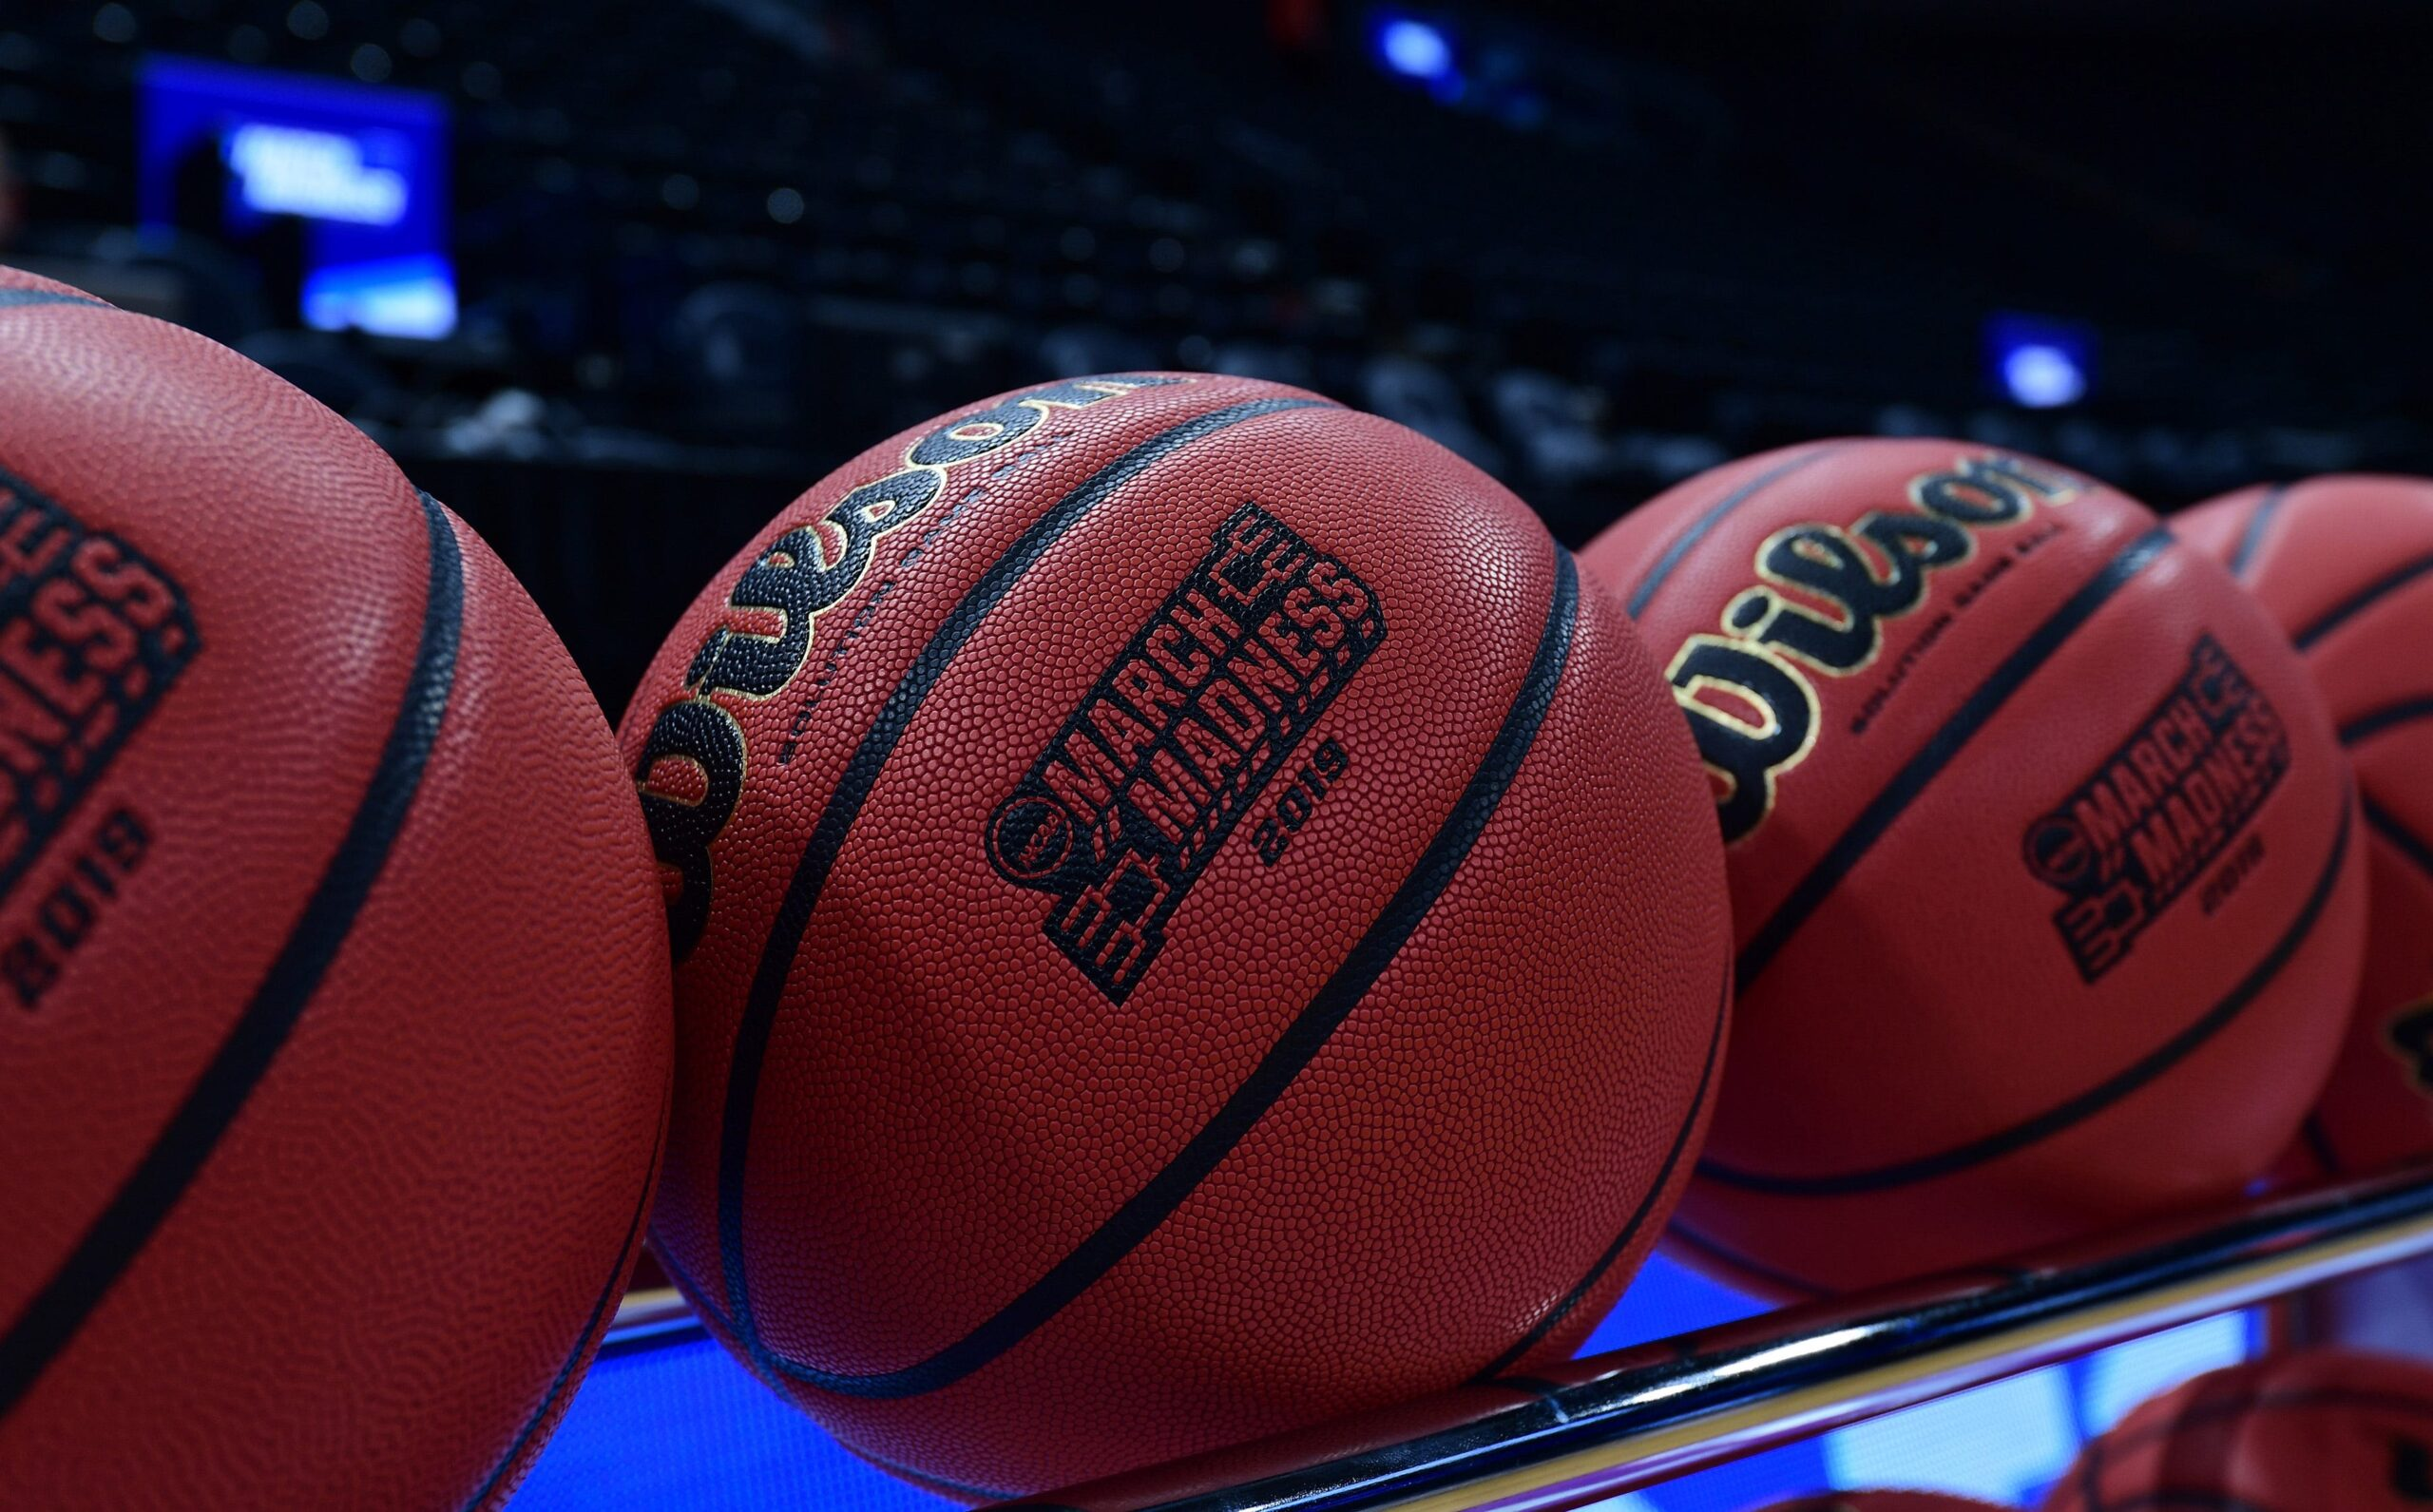 NBA postpones games in the wake of tragic events